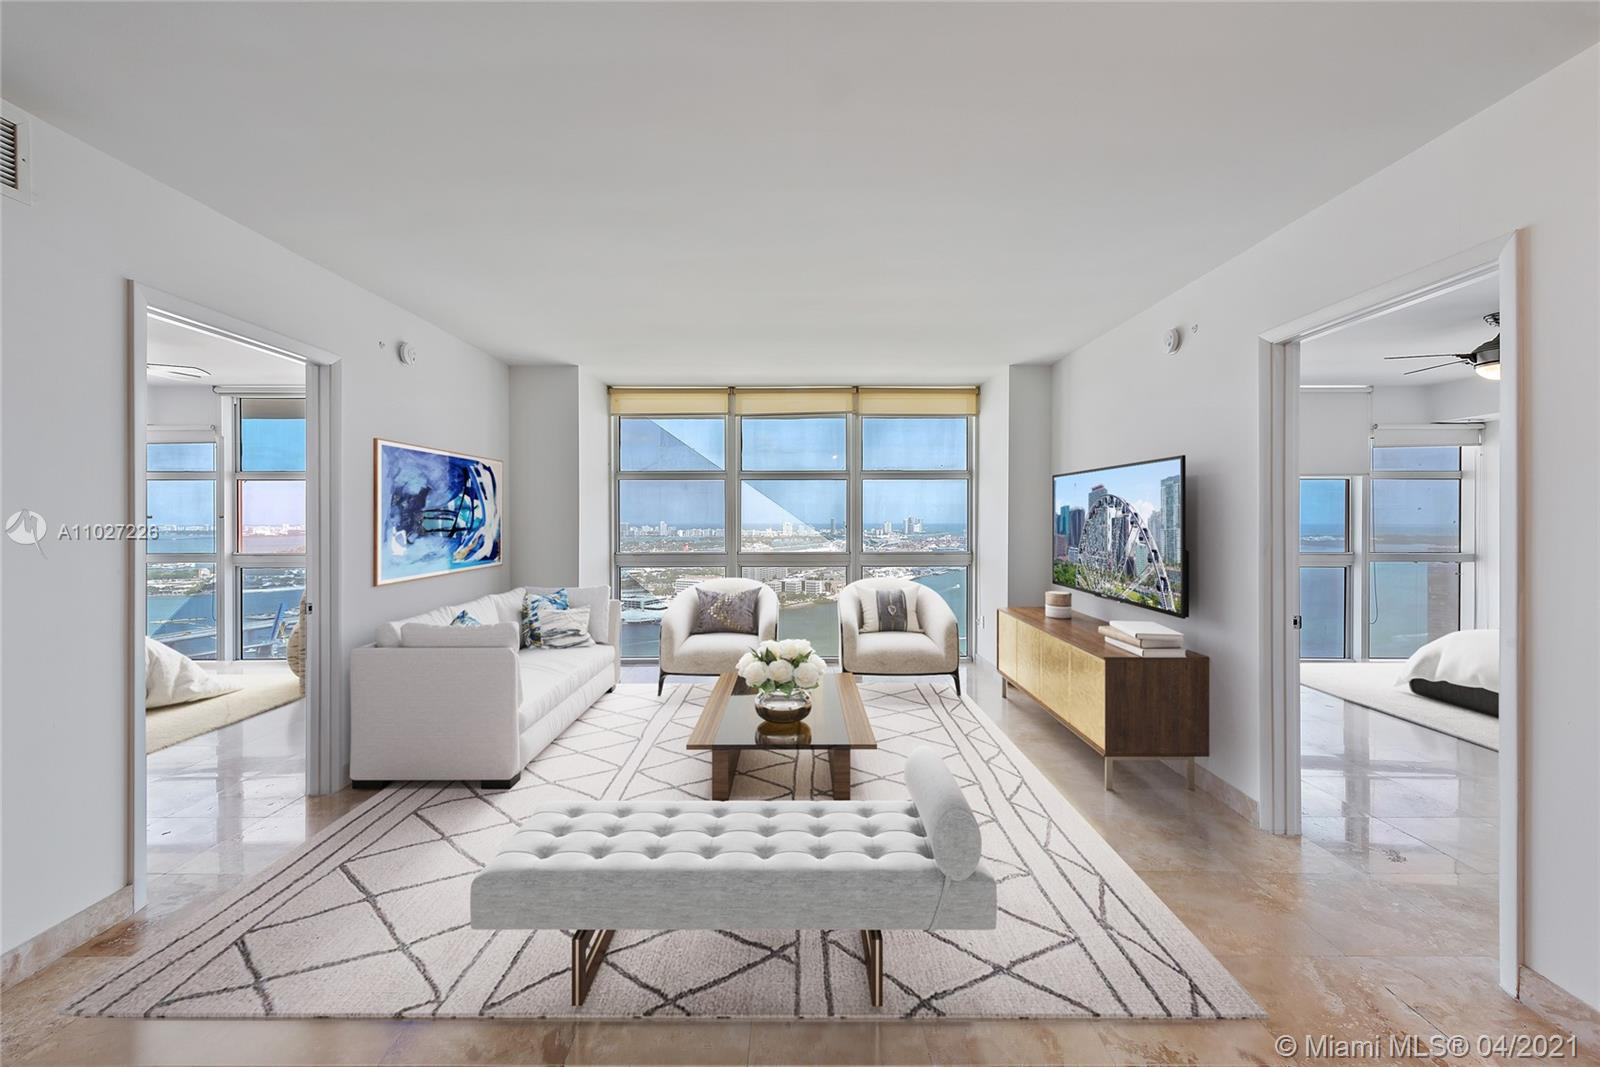 A metropolitan oasis at 50 Biscayne! Residence 4106 features 2 bedrooms + den, 2 baths, travertine floors throughout, and a kitchen with all Teak cabinetry. The living room and bedrooms provide unobstructed, magical views of Biscayne Bay and Bayfront Park. In lieu of a balcony, exterior window art inspired by Roberto Burle Marx lets residents see the bay through the lens of his work. 50 Biscayne residents enjoy a 2-story clubroom, infinity-edge pool deck w/ cabanas and lush landscaping, and a 2-story health + fitness center containing a spa and meditation rooms. Located in Miami's lifestyle epicenter, walking to the arts + culture nearby such as Bayside Marketplace, Perez Art Museum, and AAA has never been easier.